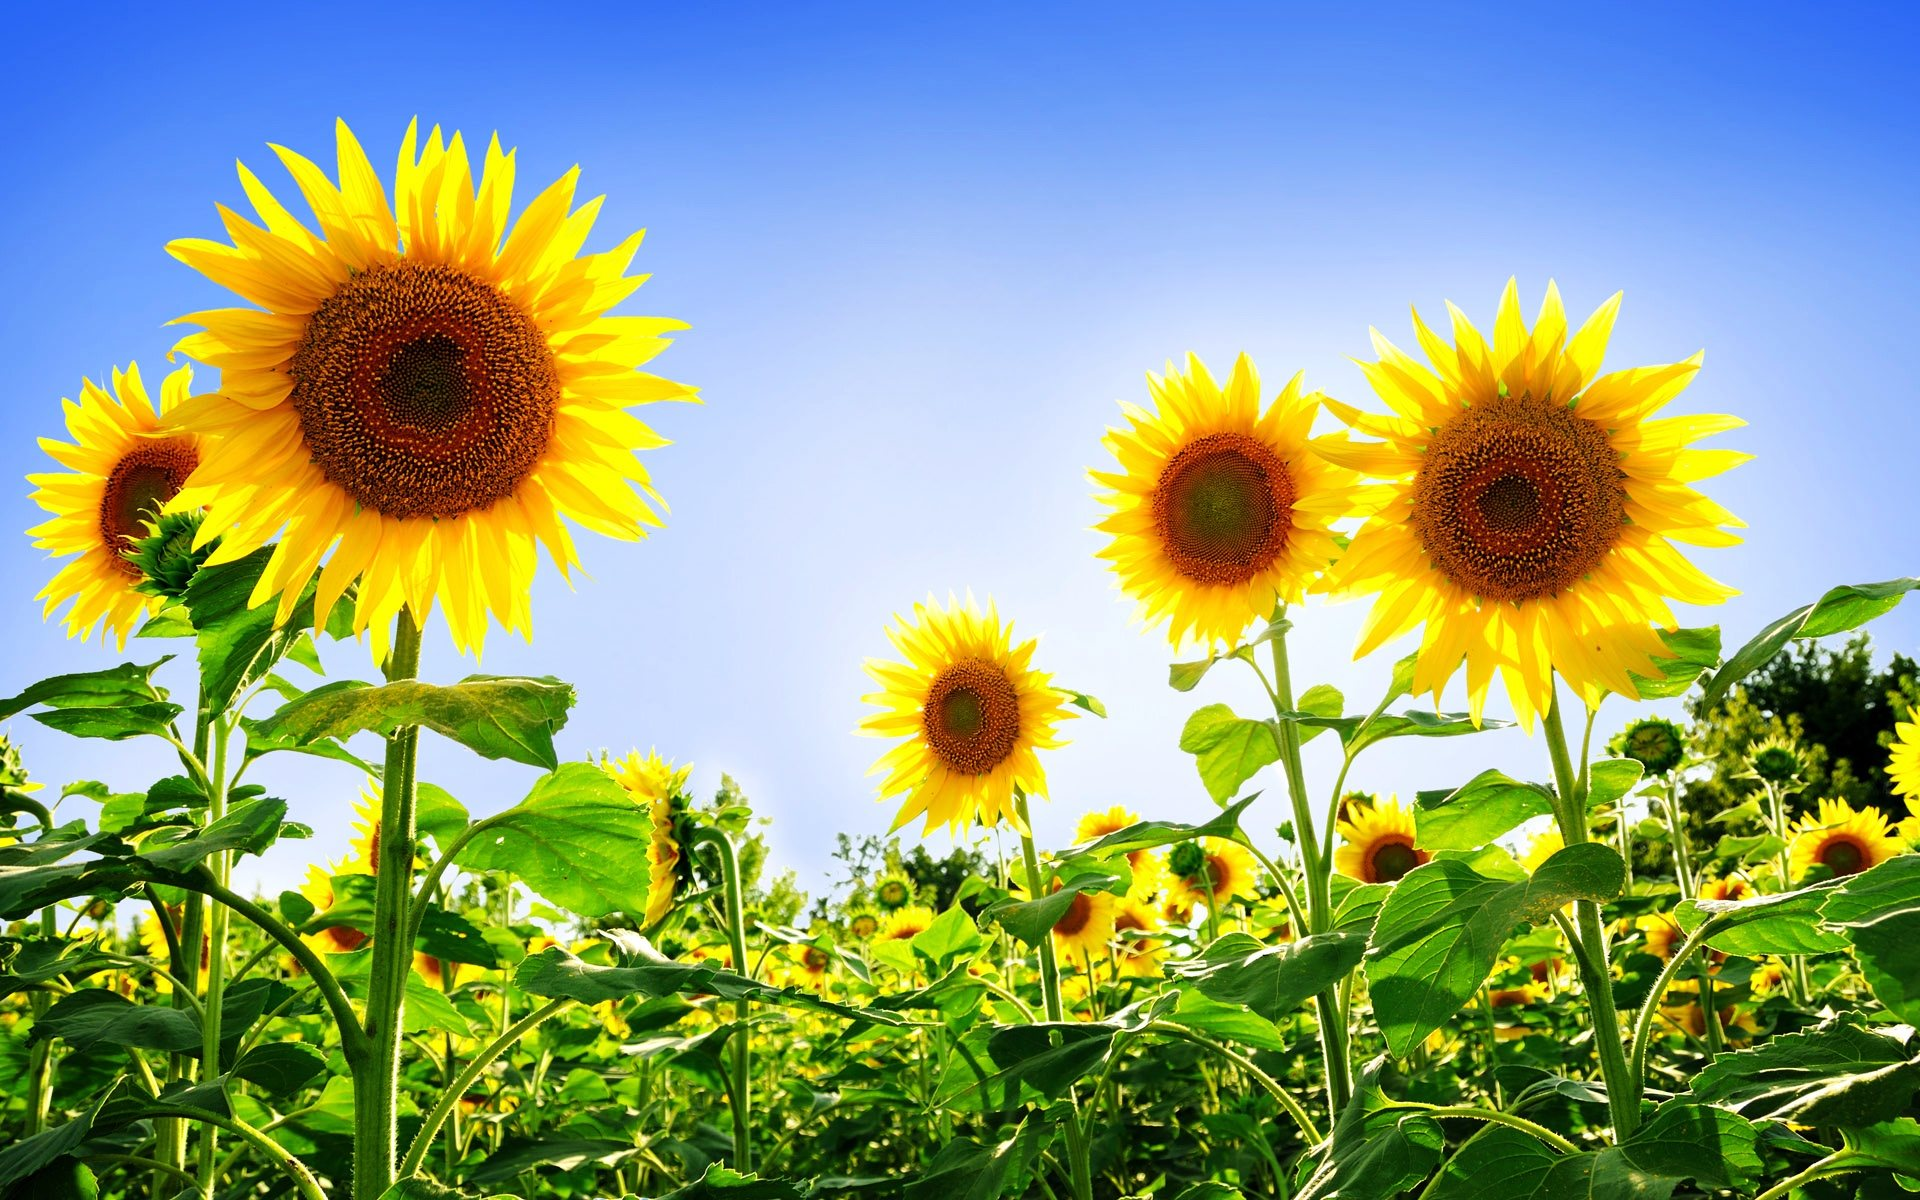 gorgeous sunflowers wallpaper [1920x1200]